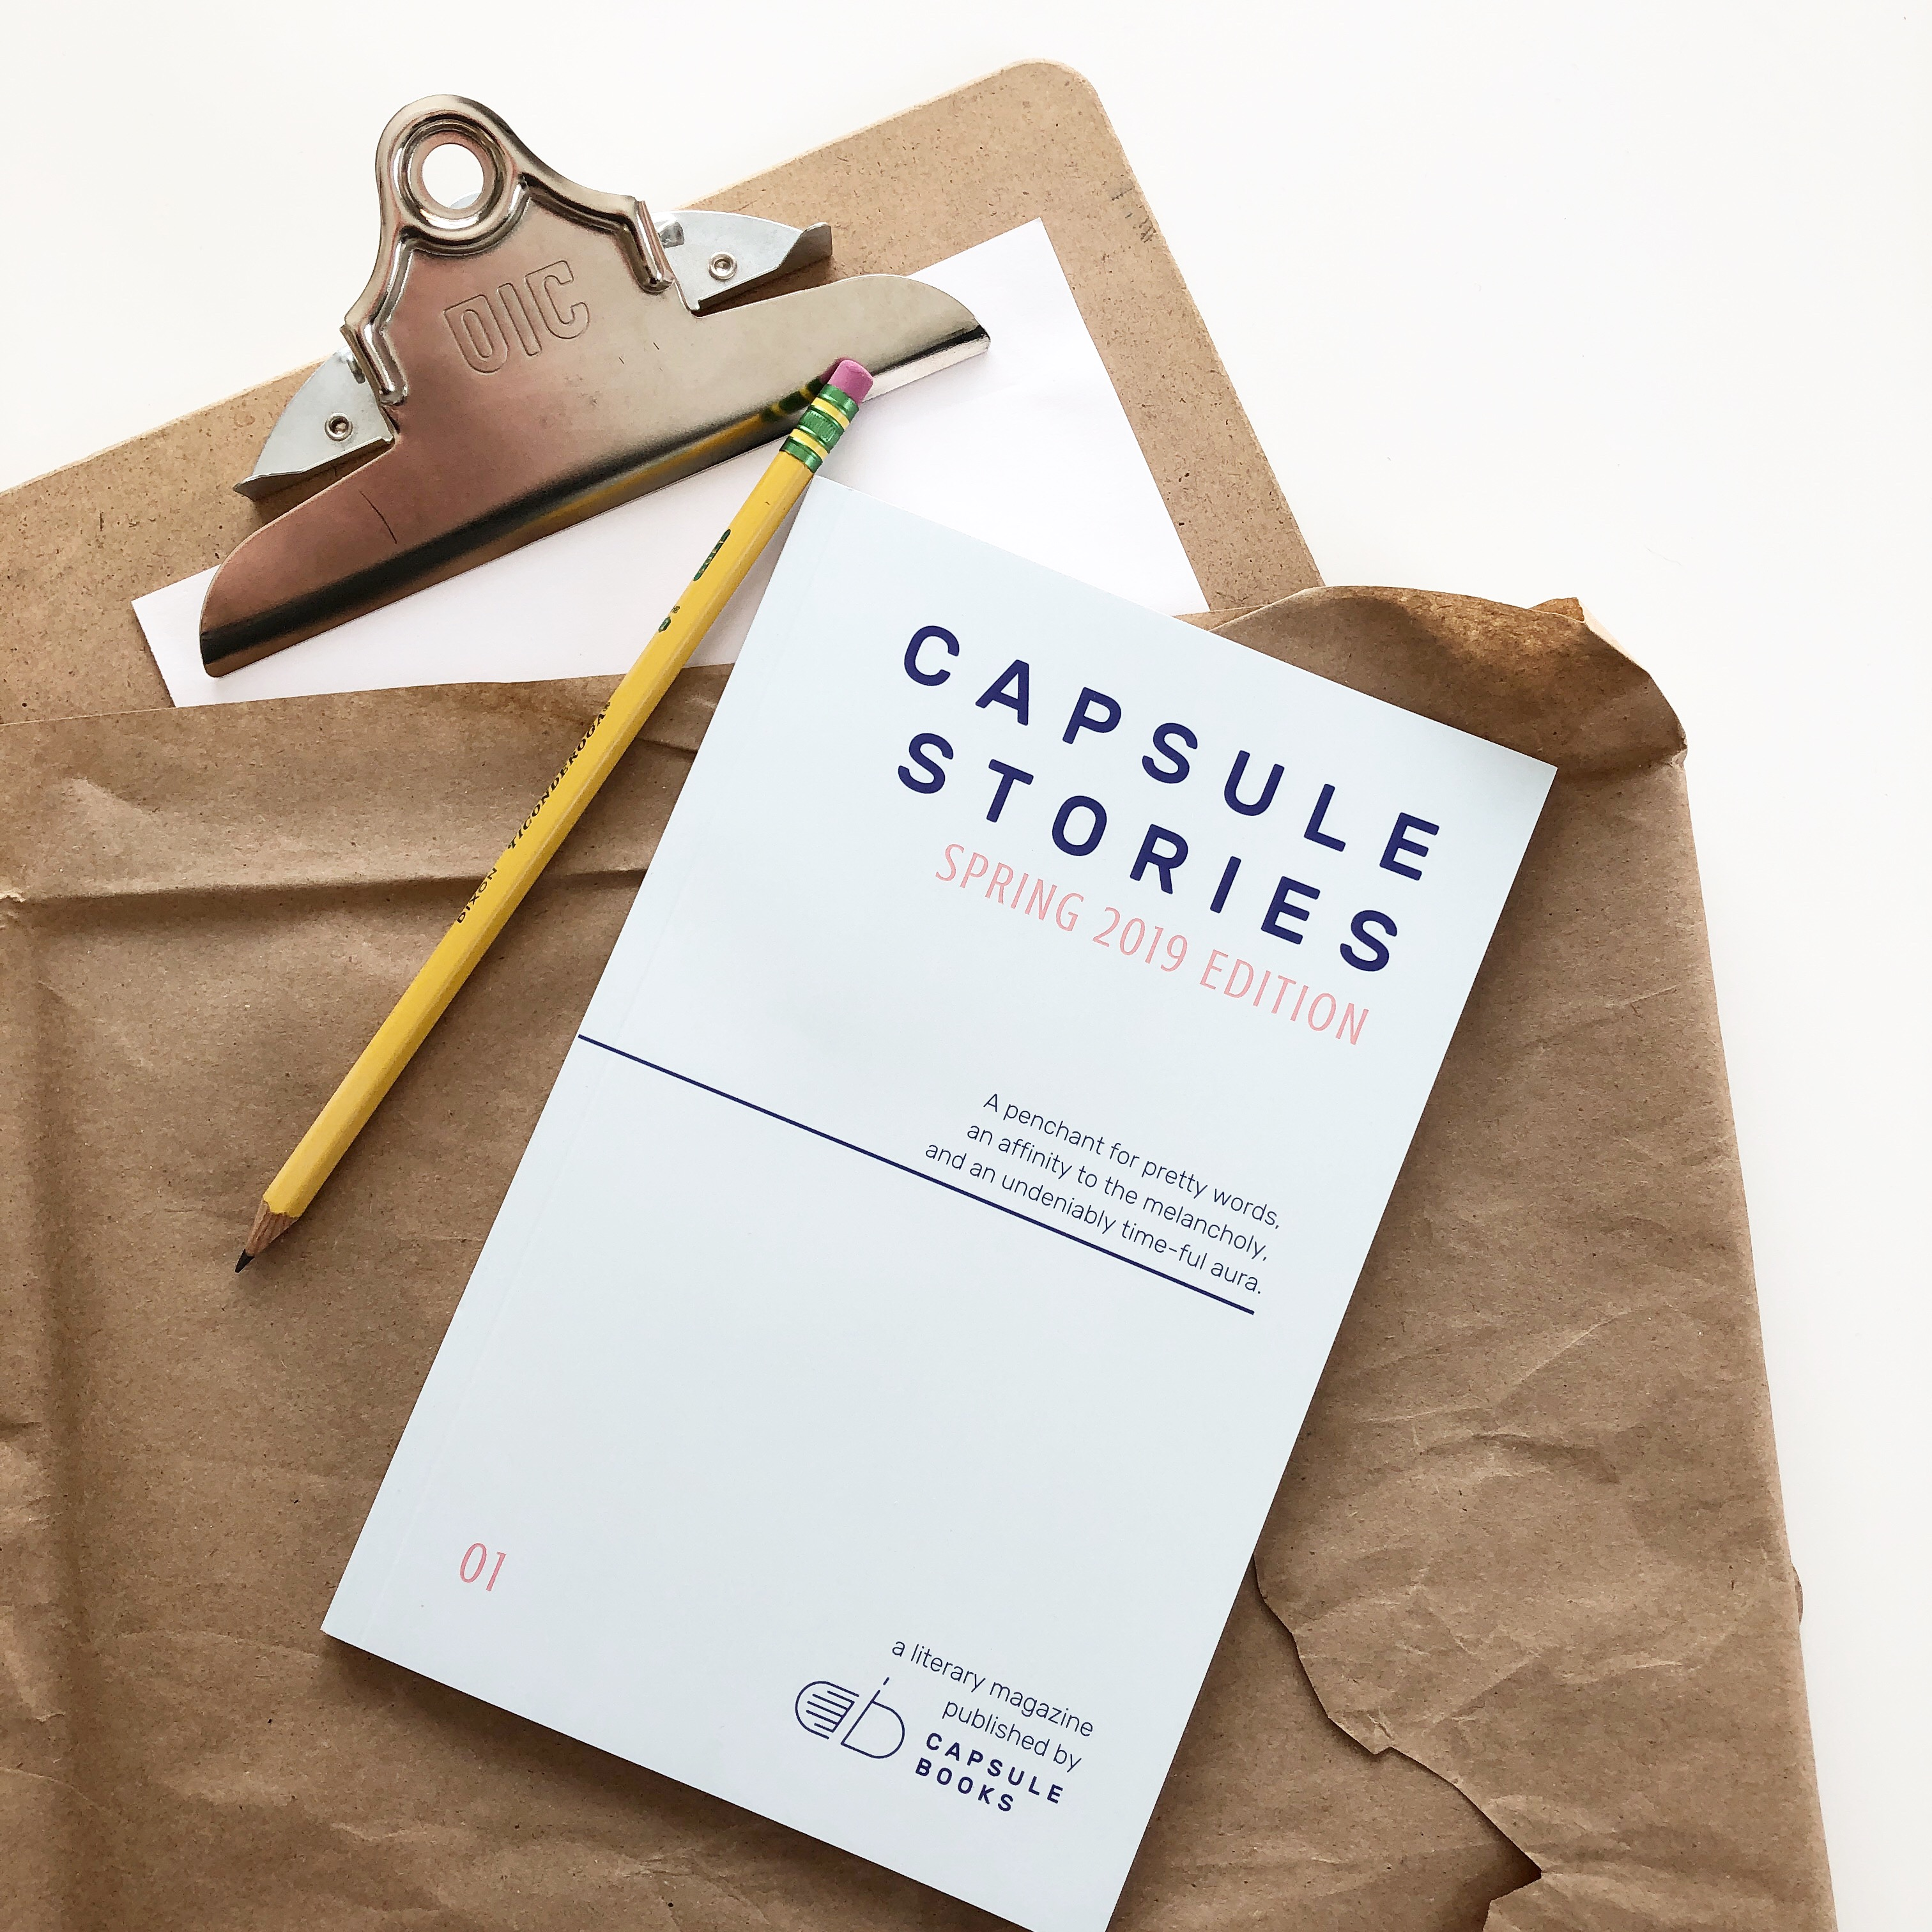 Therapy in a Box: Meet Capsule Books [imgs provided with approval